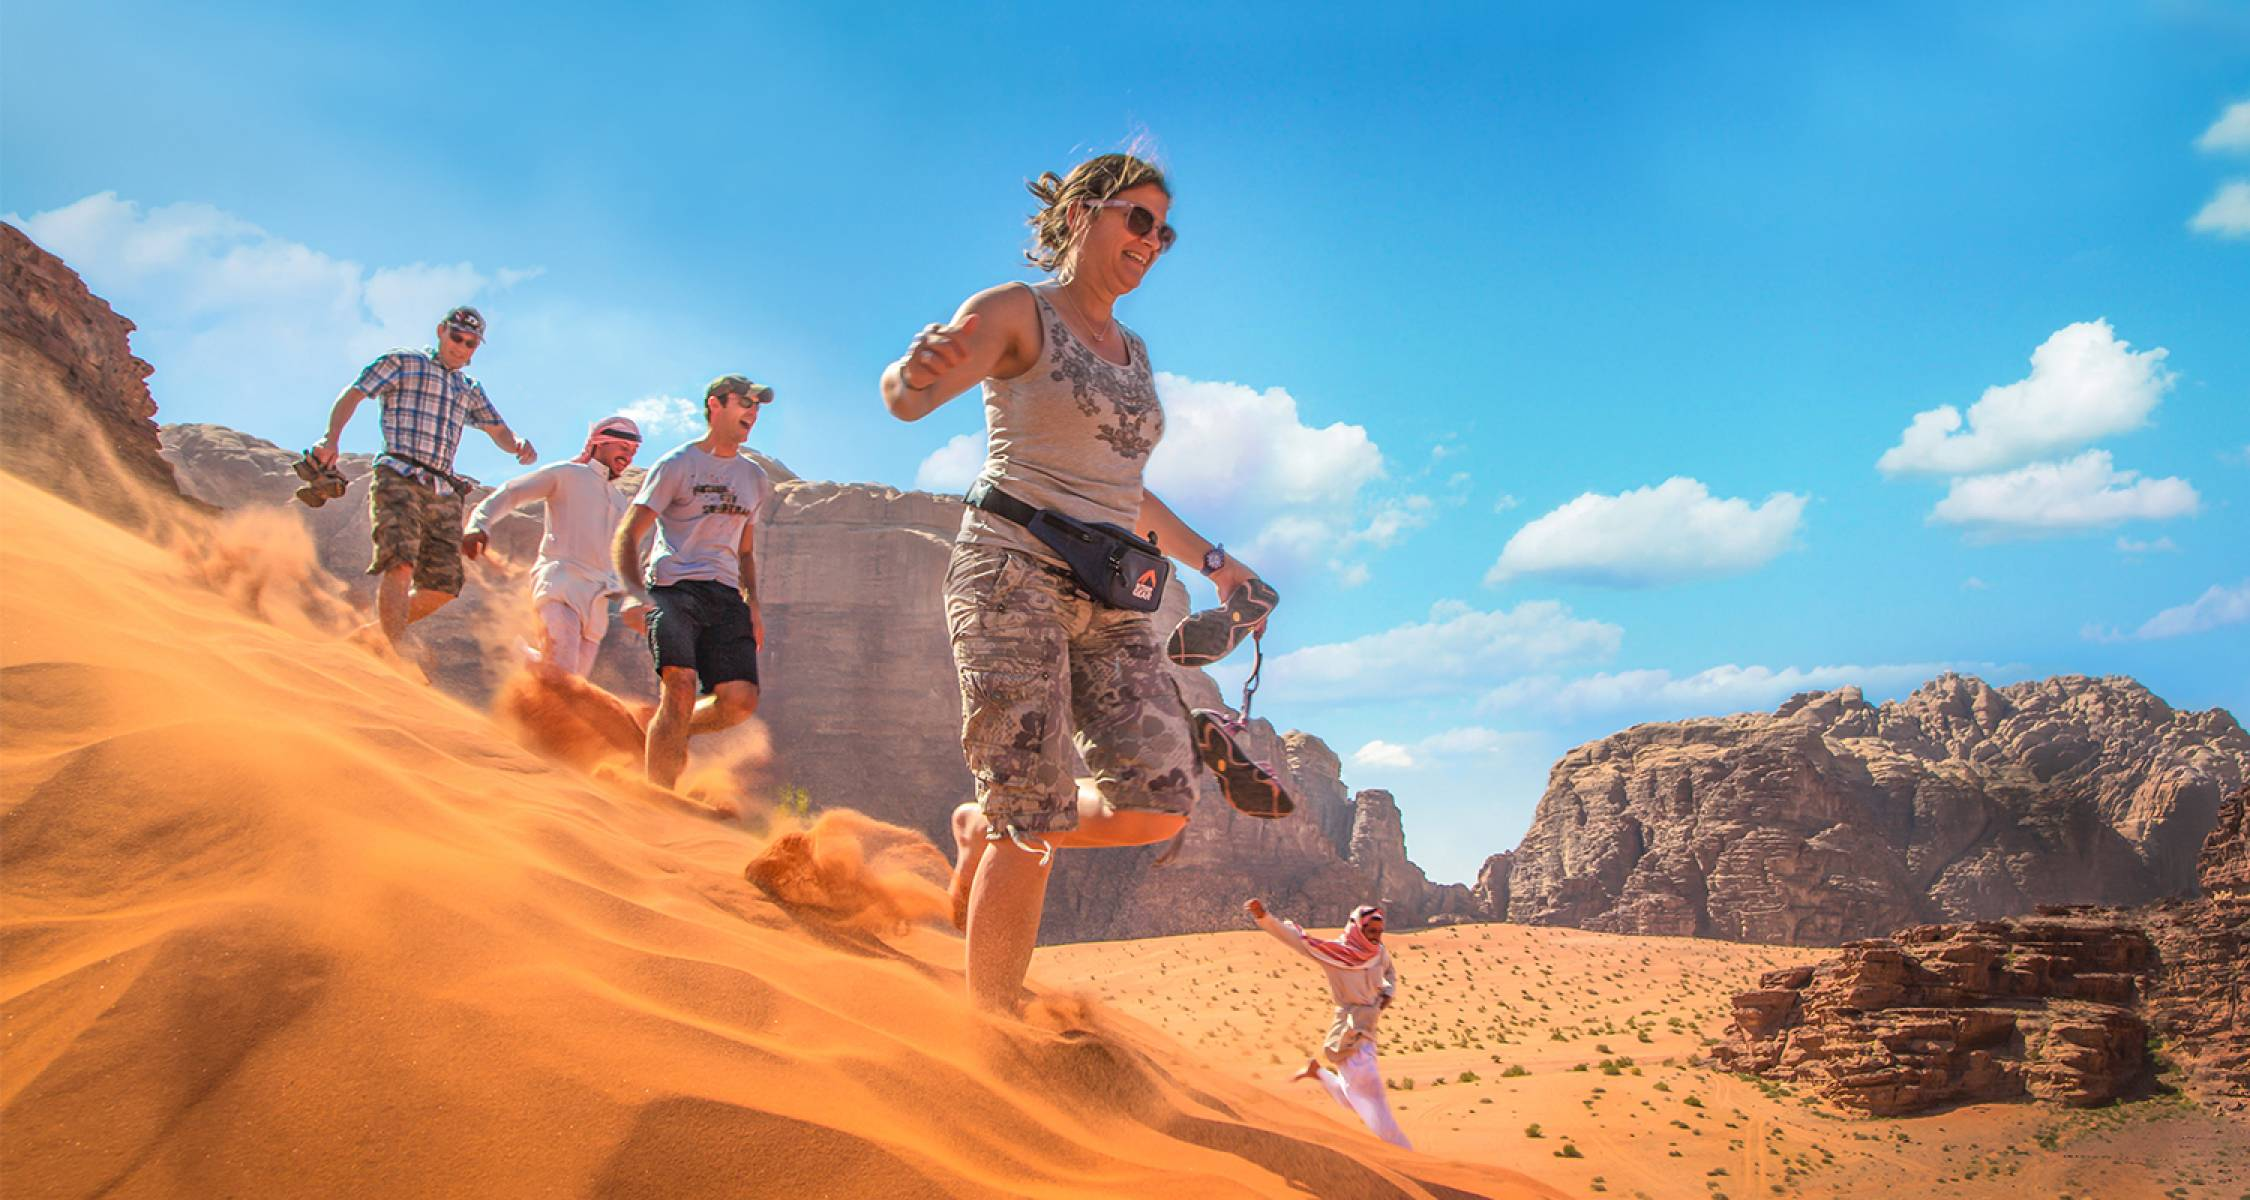 Pyramids to Petra with Cruise - 15 days